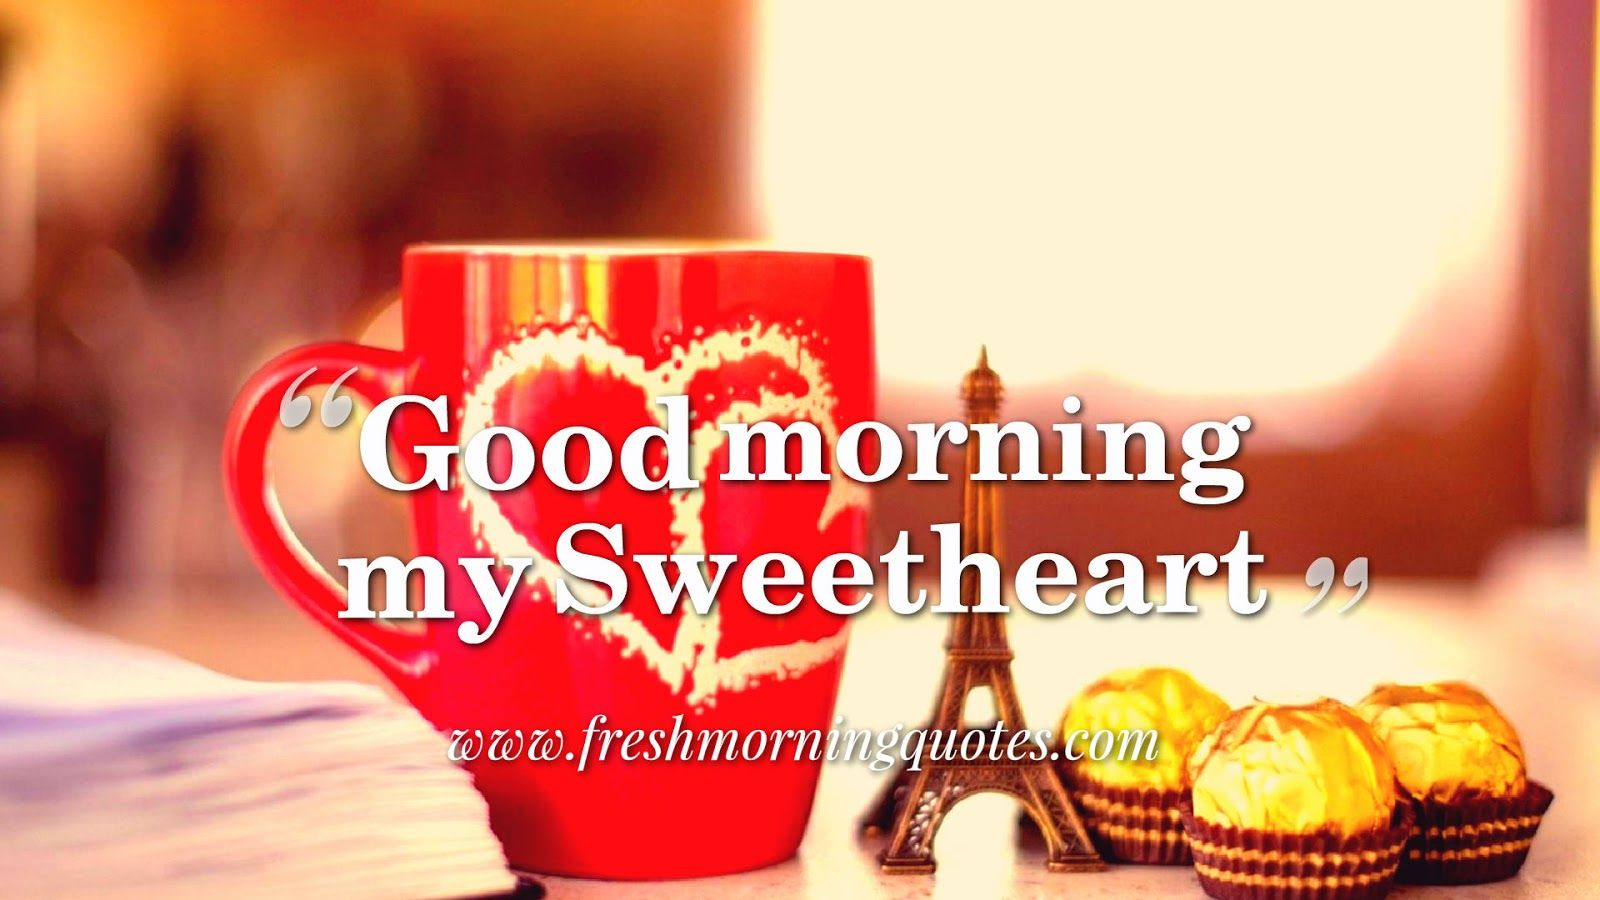 10 Beautiful Good Morning Love Wallpapers Freshmorningquotes